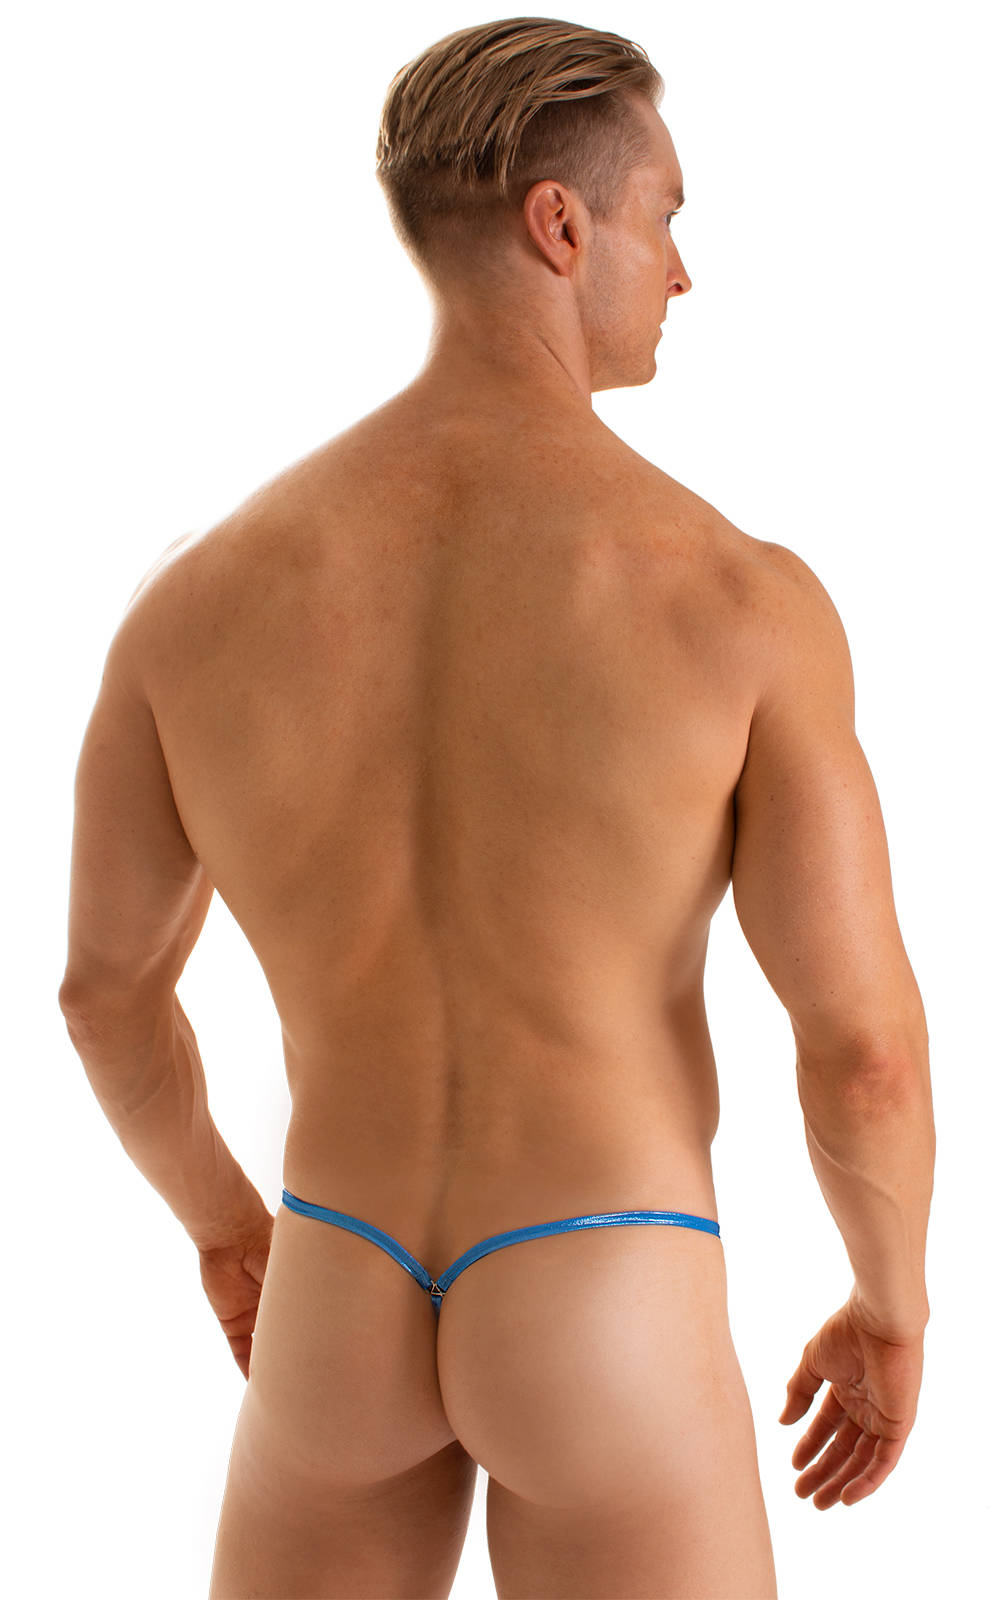 Stuffit Pouch G String Swimsuit in Ice Karma Electric Blue 2